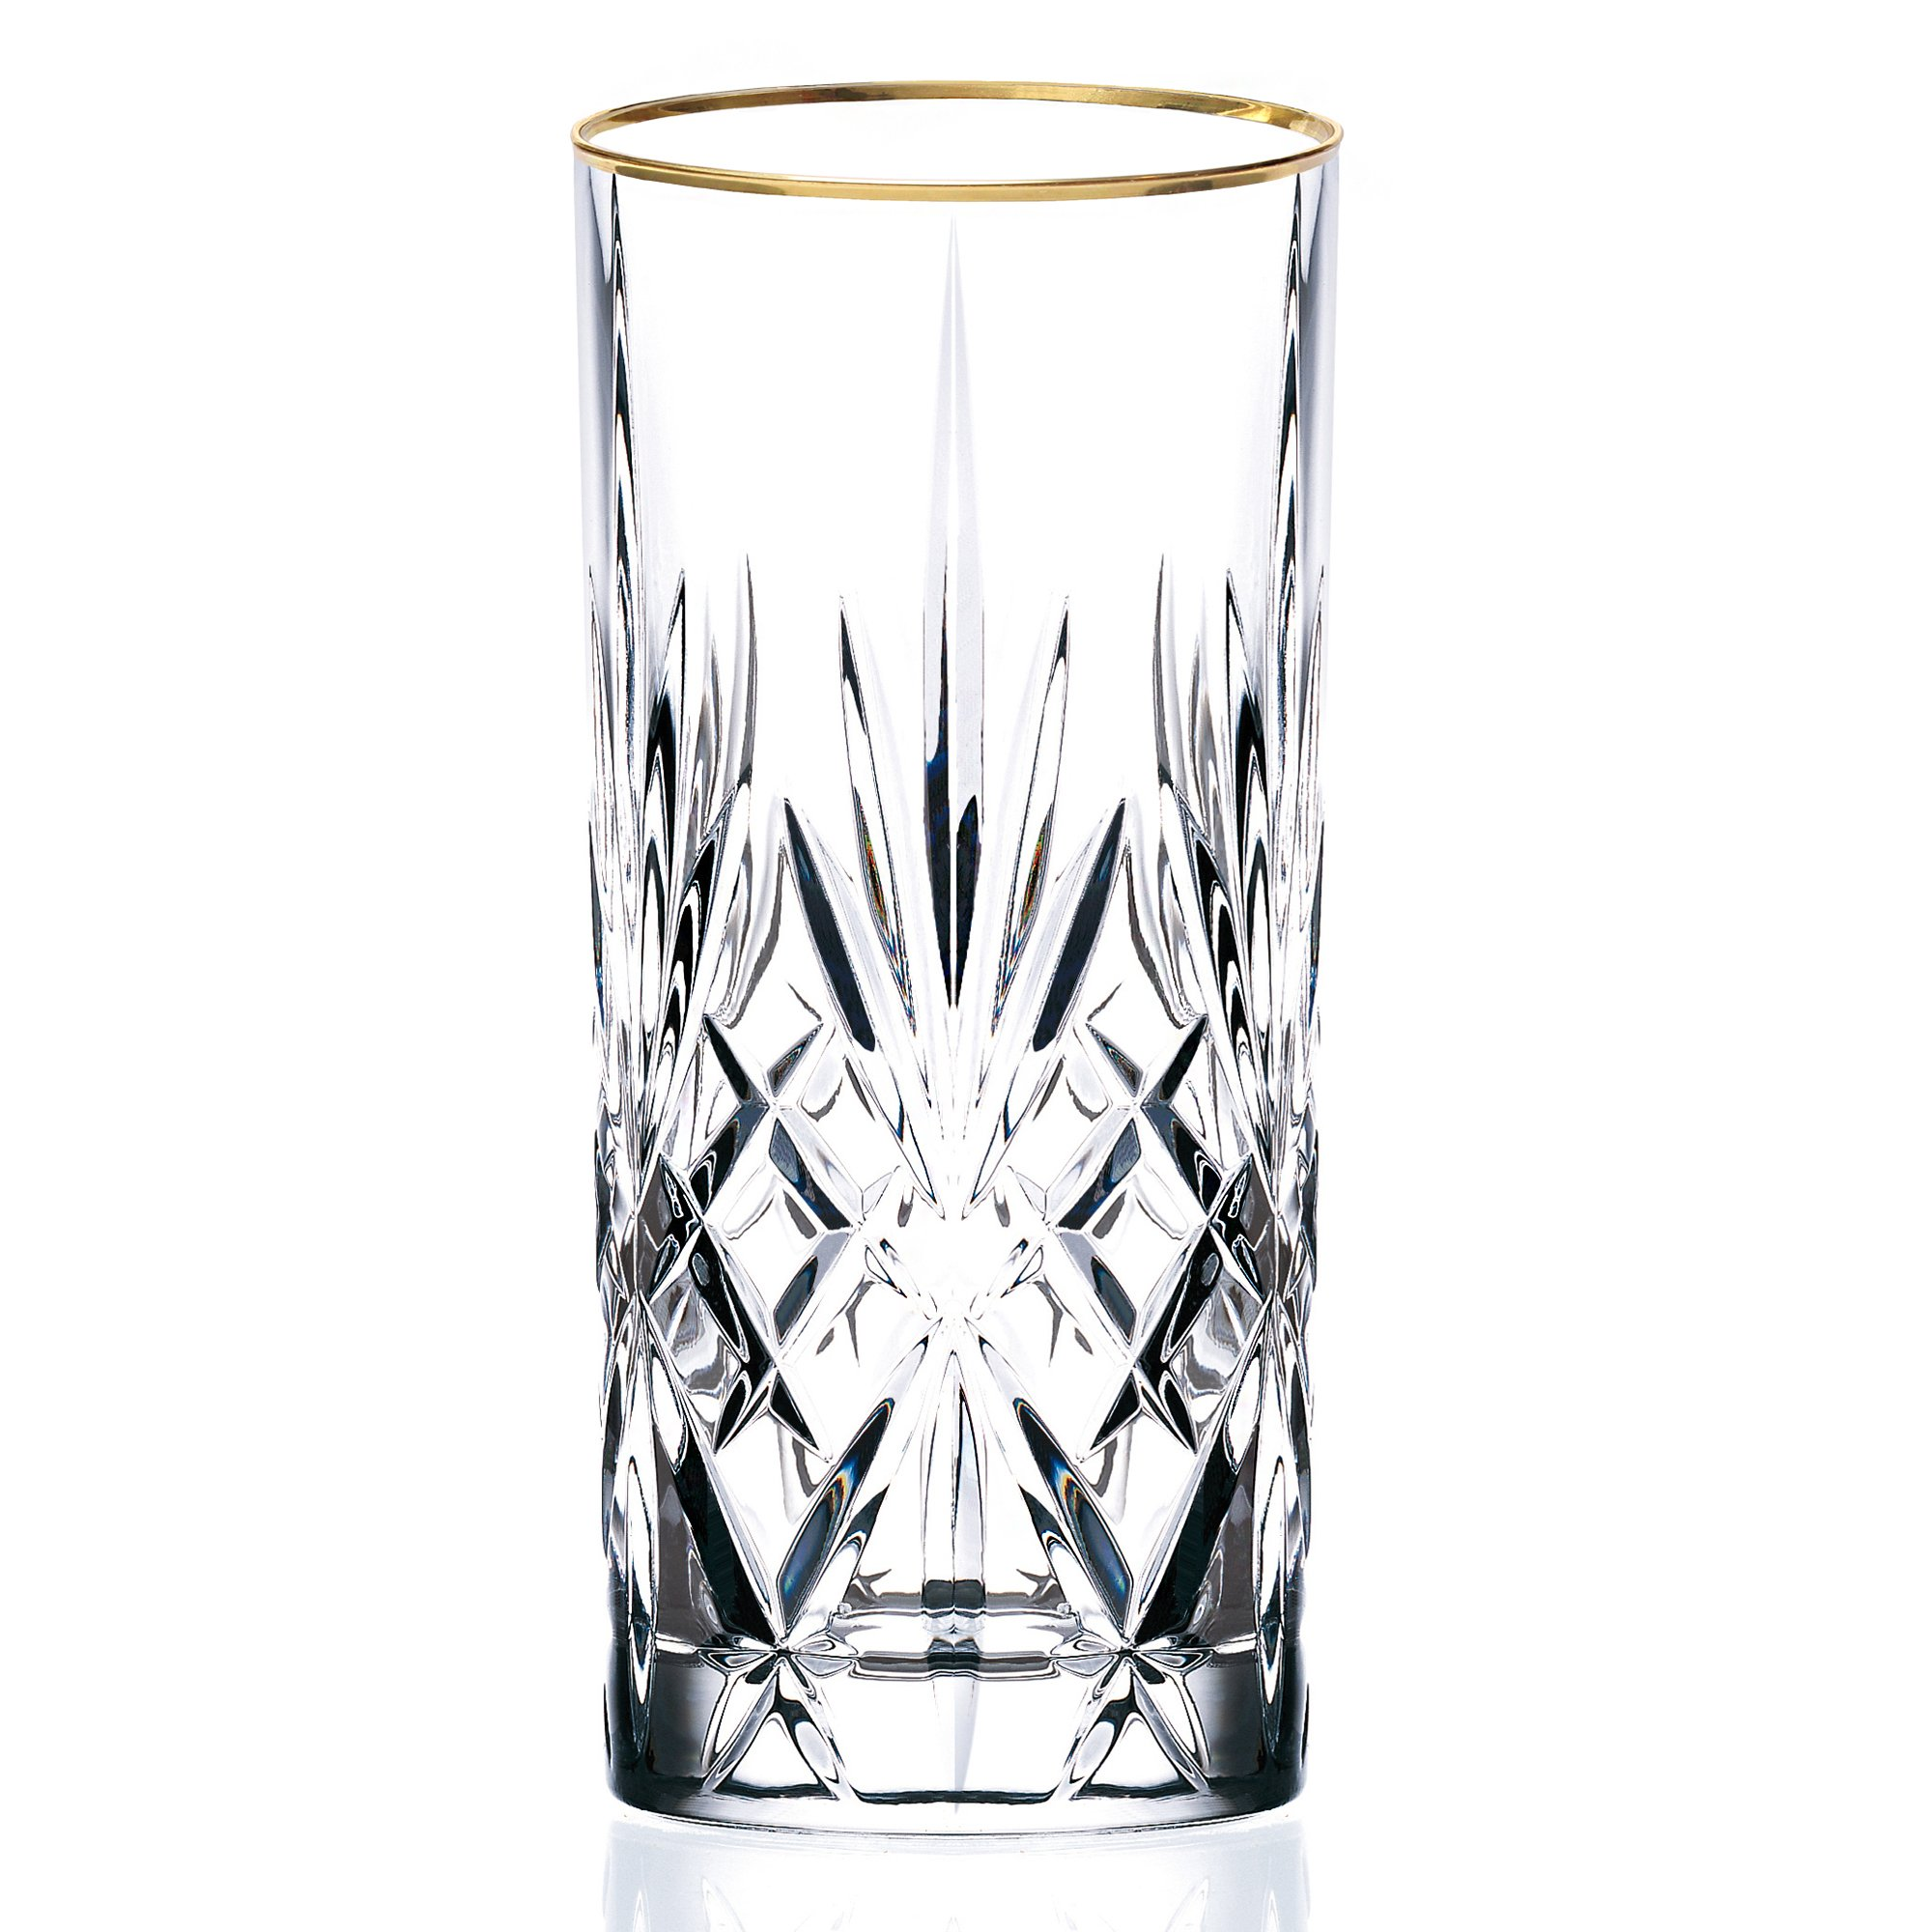 Lorren Home Trends Siena Collection Crystal Water Beverage or Ice Tea Glass with Gold Band Design, Set of 4